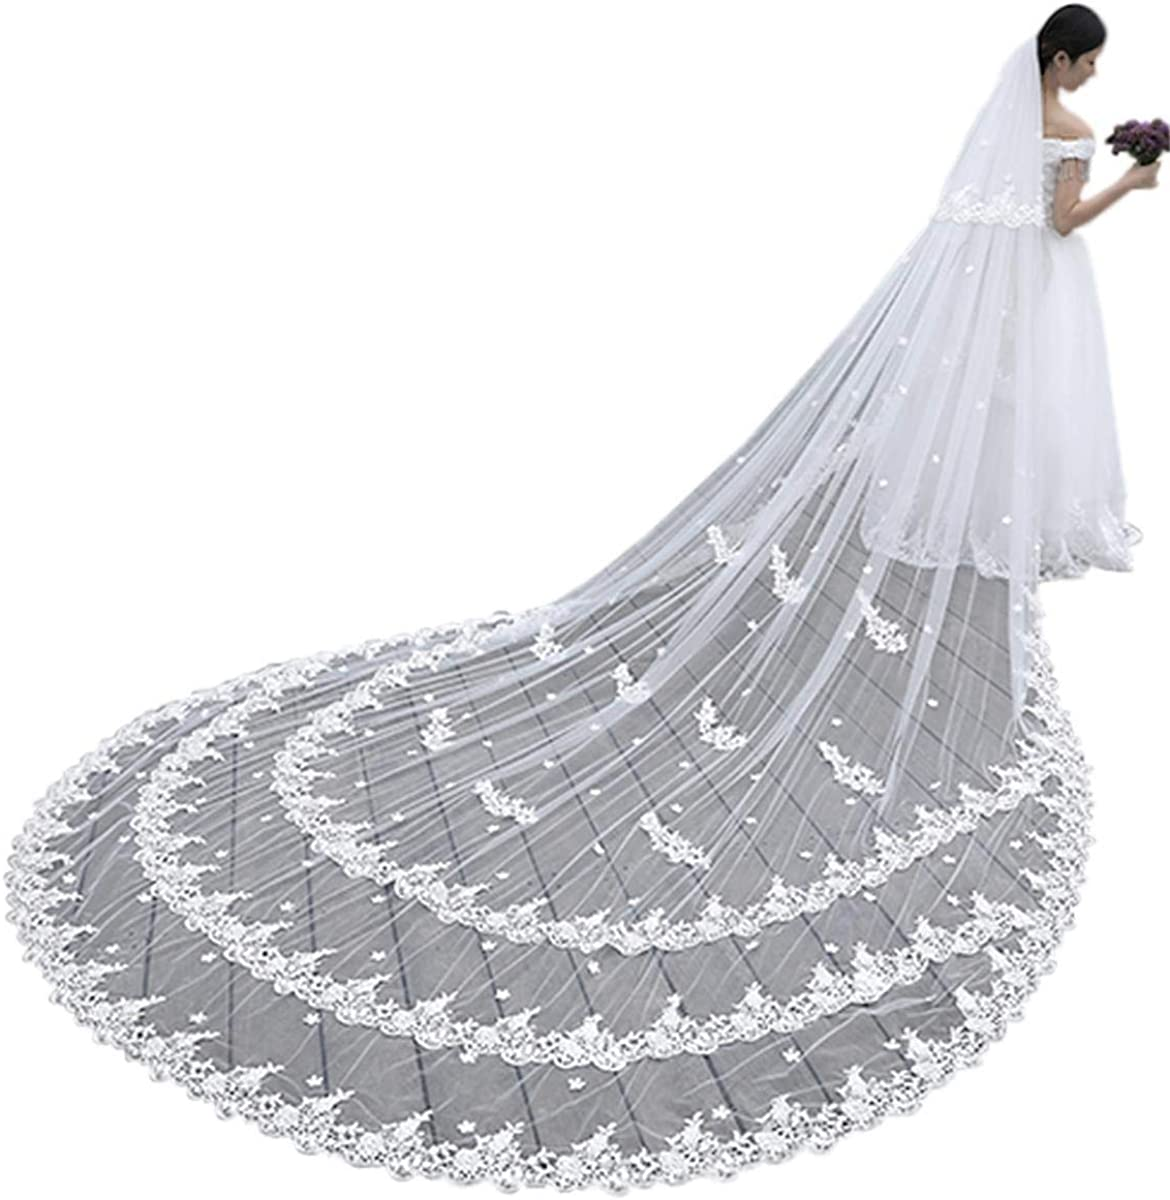 Fenghuavip 5M Cathedral Wedding Veils Long 2 Tier Lace Appliques Blusher Veils with Comb